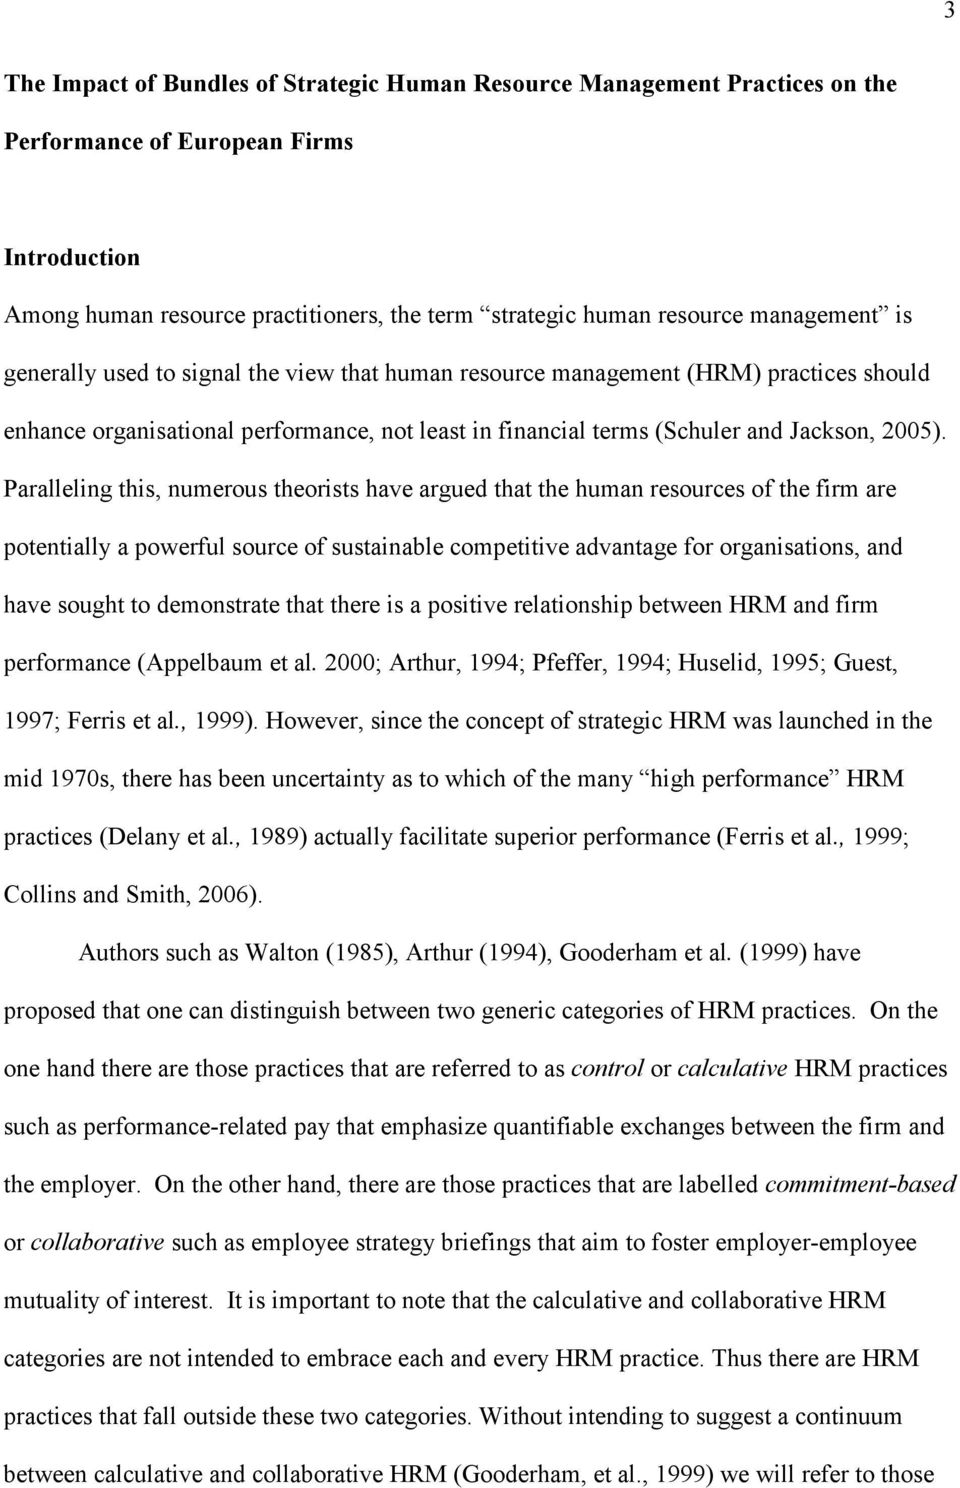 Paralleling this, numerous theorists have argued that the human resources of the firm are potentially a powerful source of sustainable competitive advantage for organisations, and have sought to